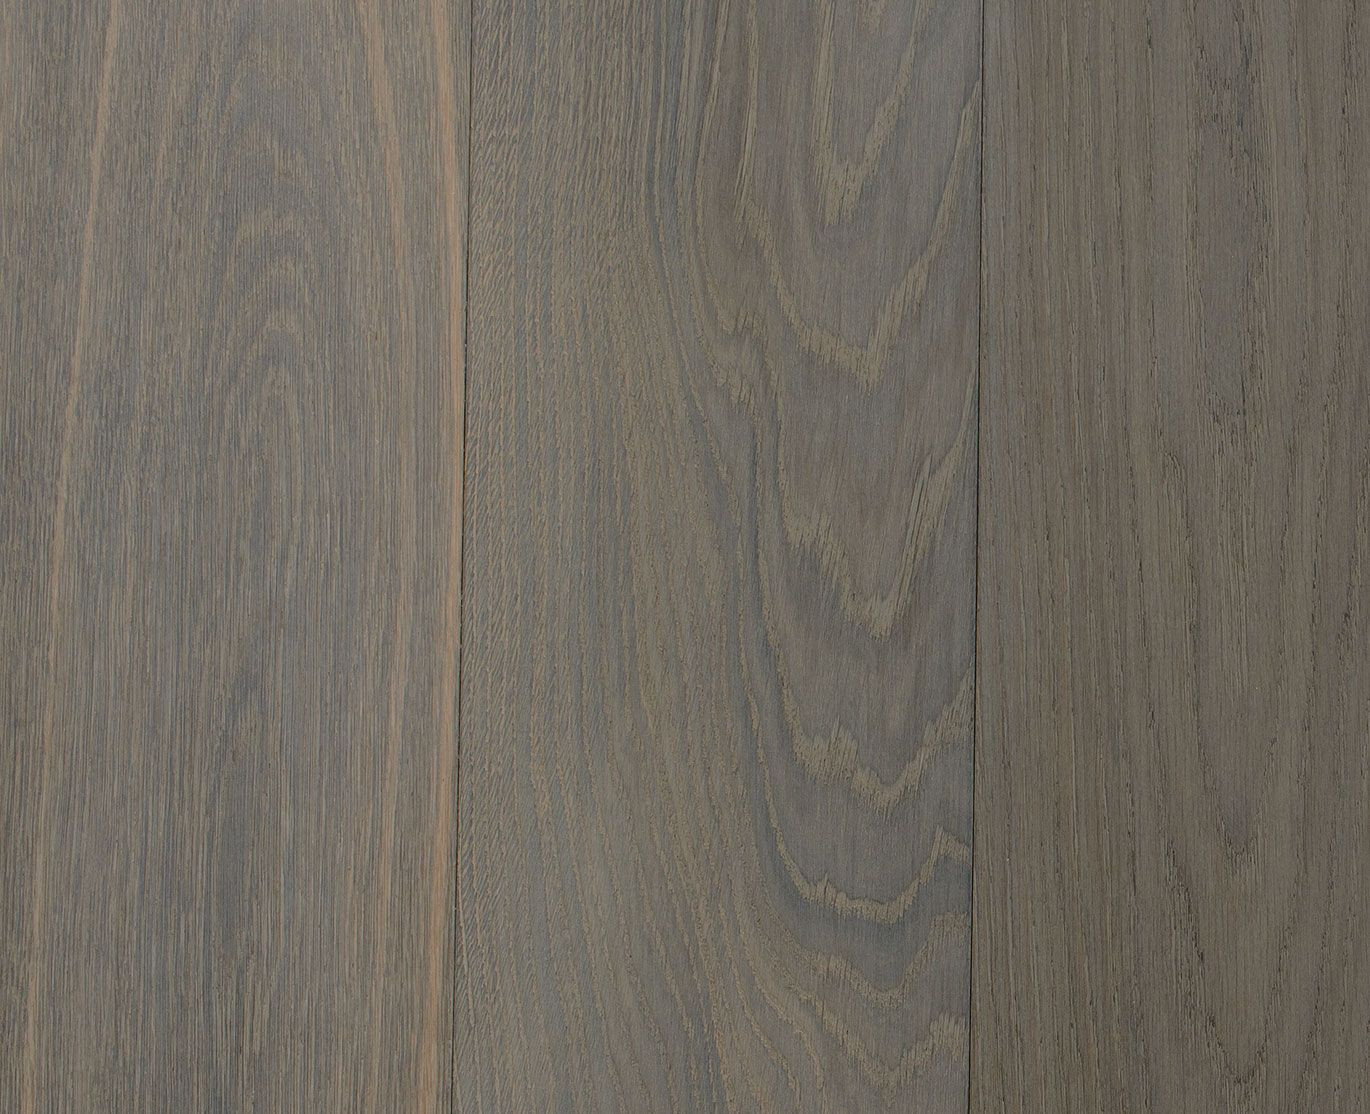 grey hardwood floors with dark furniture of dark and moody carrying all shades of grey with hints flooring throughout dark and moody carrying all shades of grey with hints